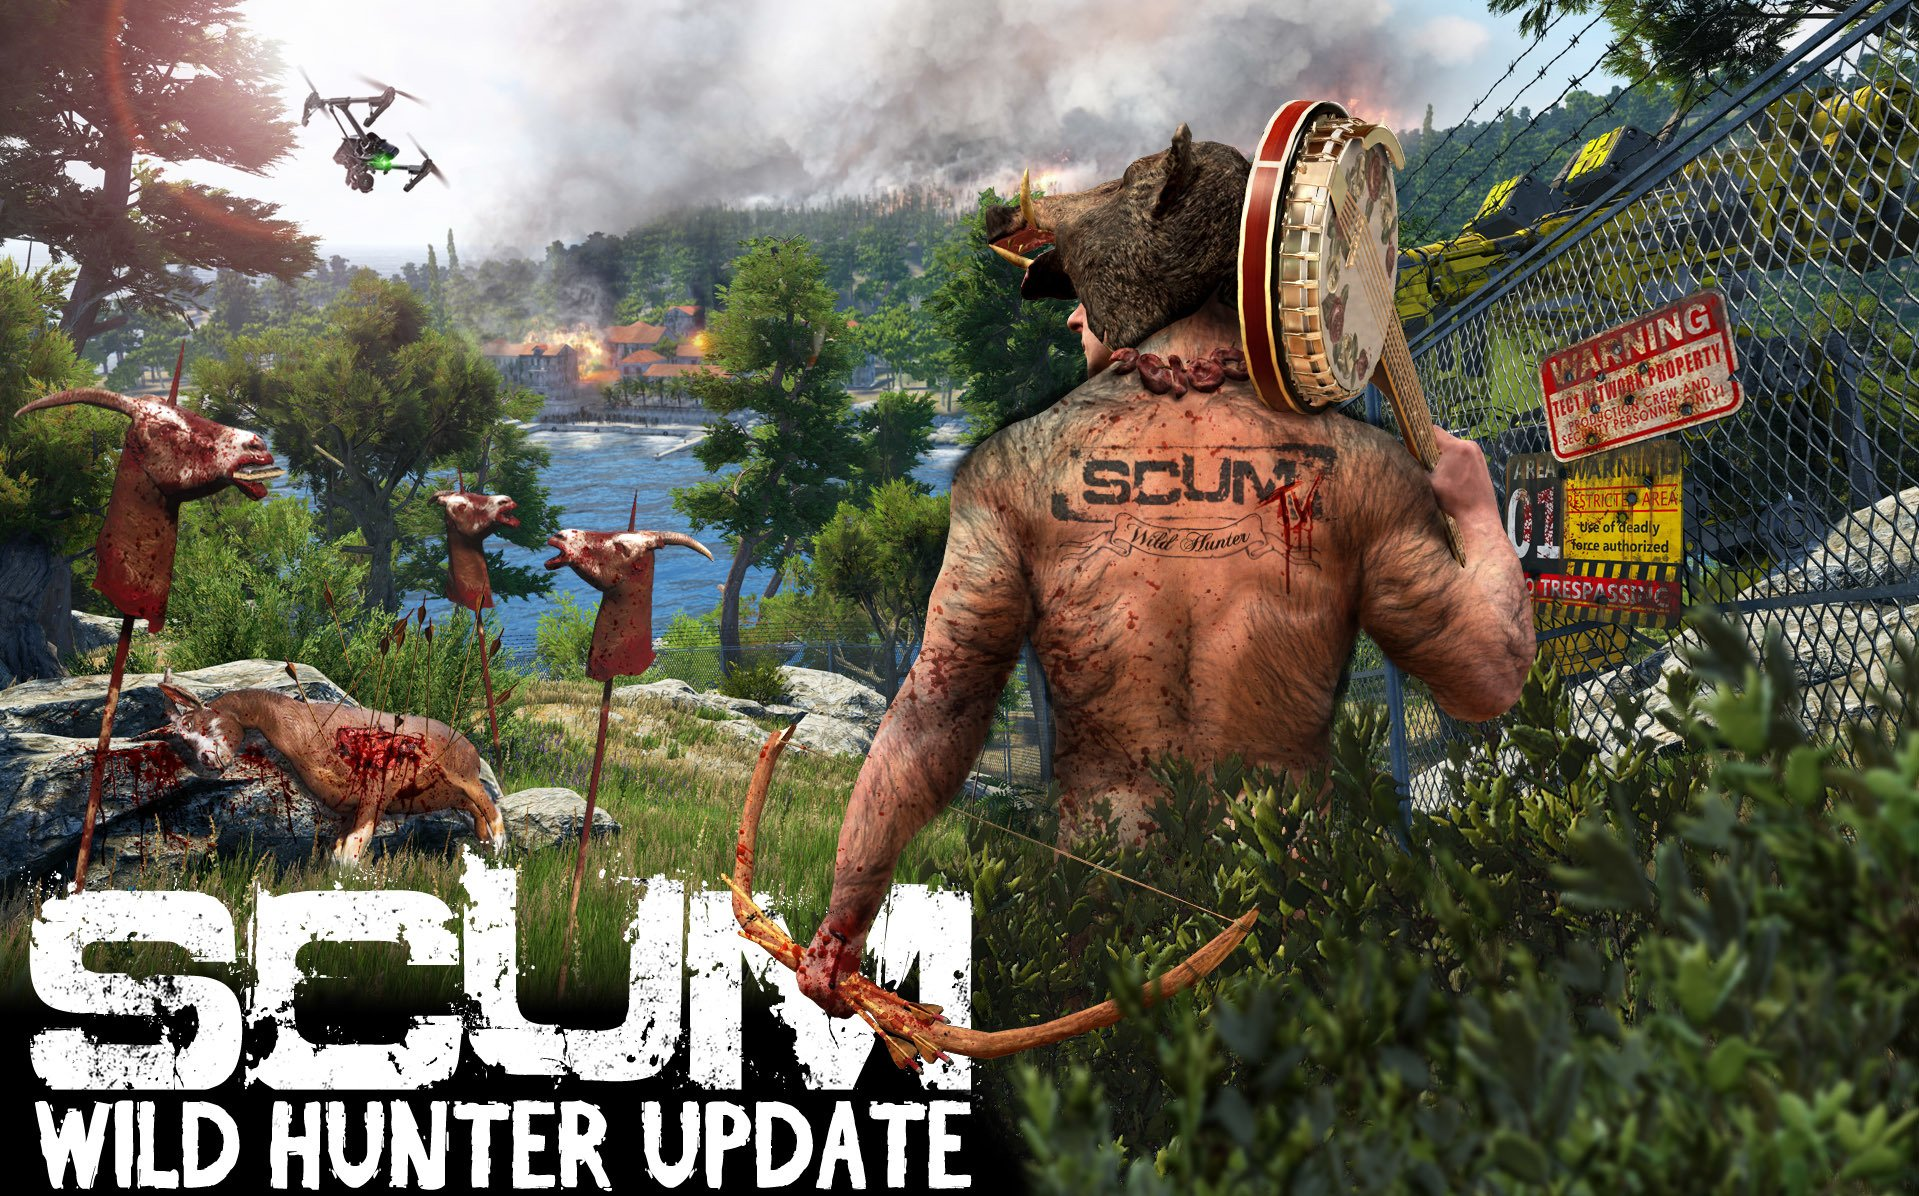 Latest SCUM Patch Allows Players To Add Attribute Points To Dong Size